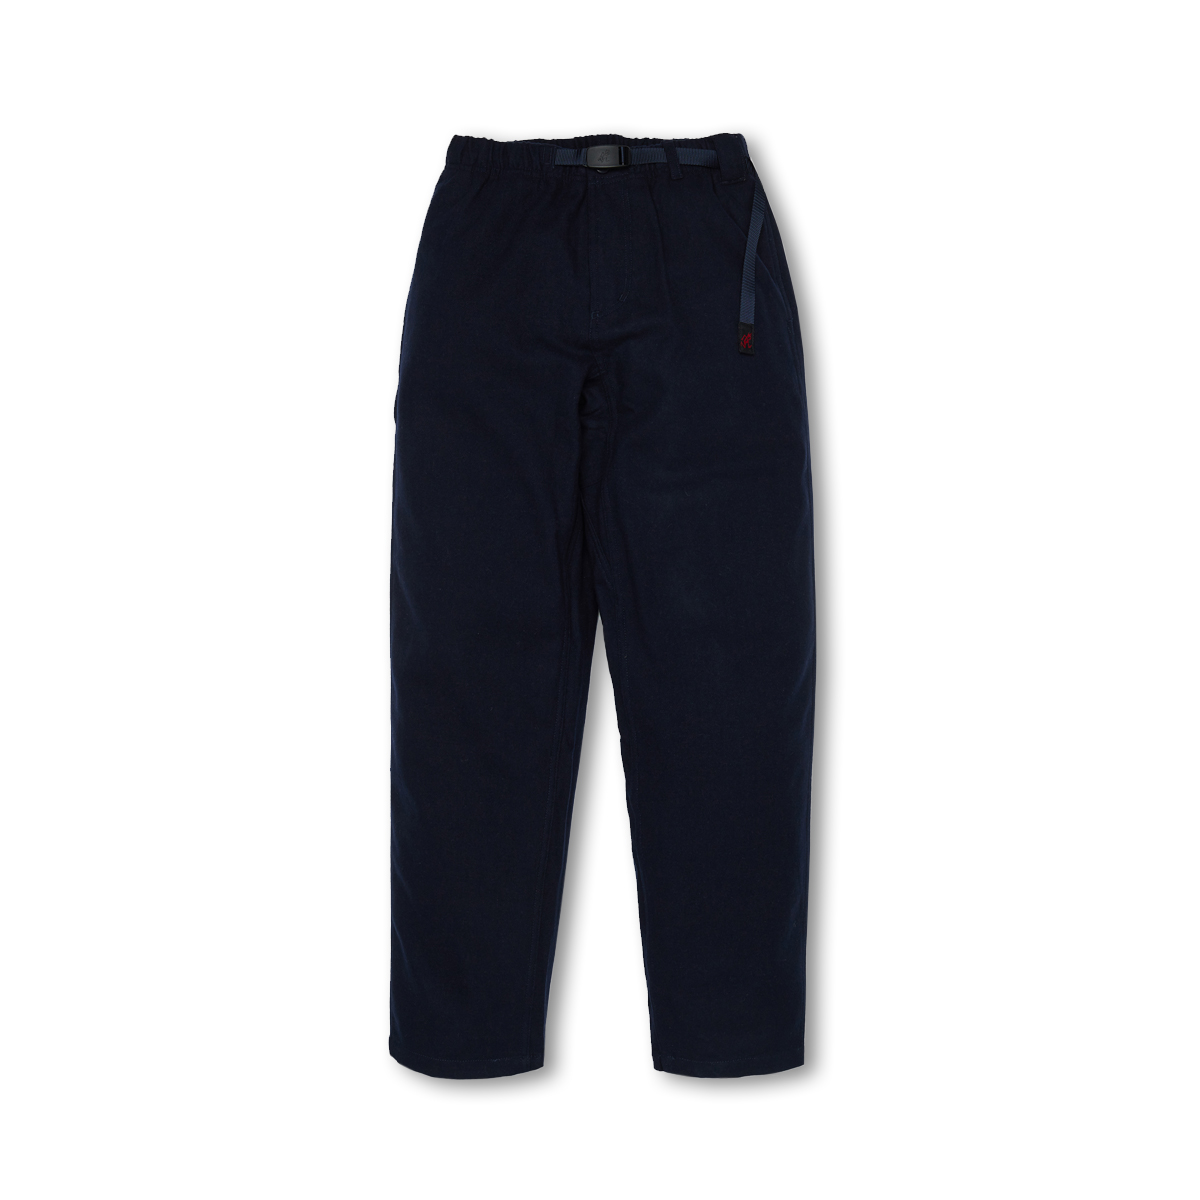 [GRAMICCI] WOOL BLEND GRAMICCI PANTS 'DOUBLE NAVY'